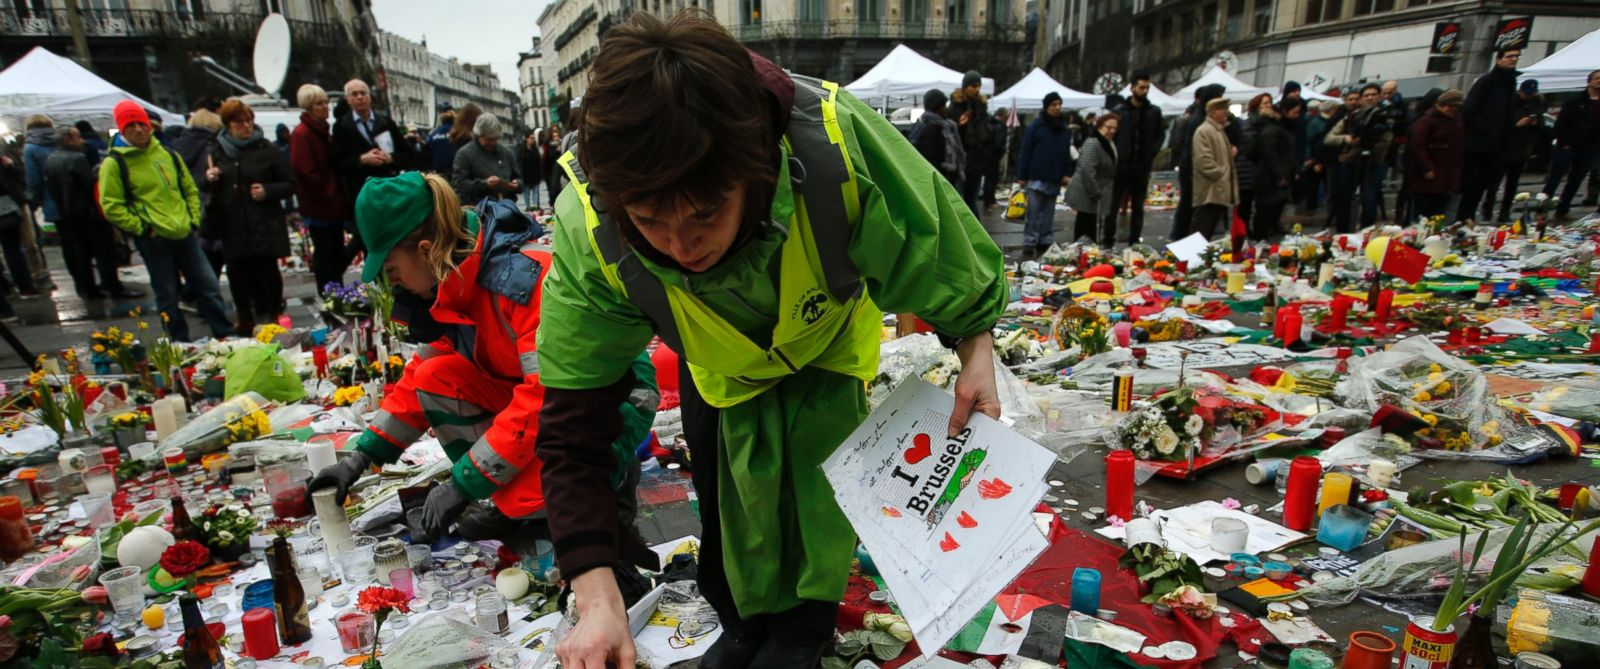 PHOTO: Workers from the City of Brussels collect some of the tributes to preserve them at the Place de la Bourse in Brussels, March, 25, 2016.